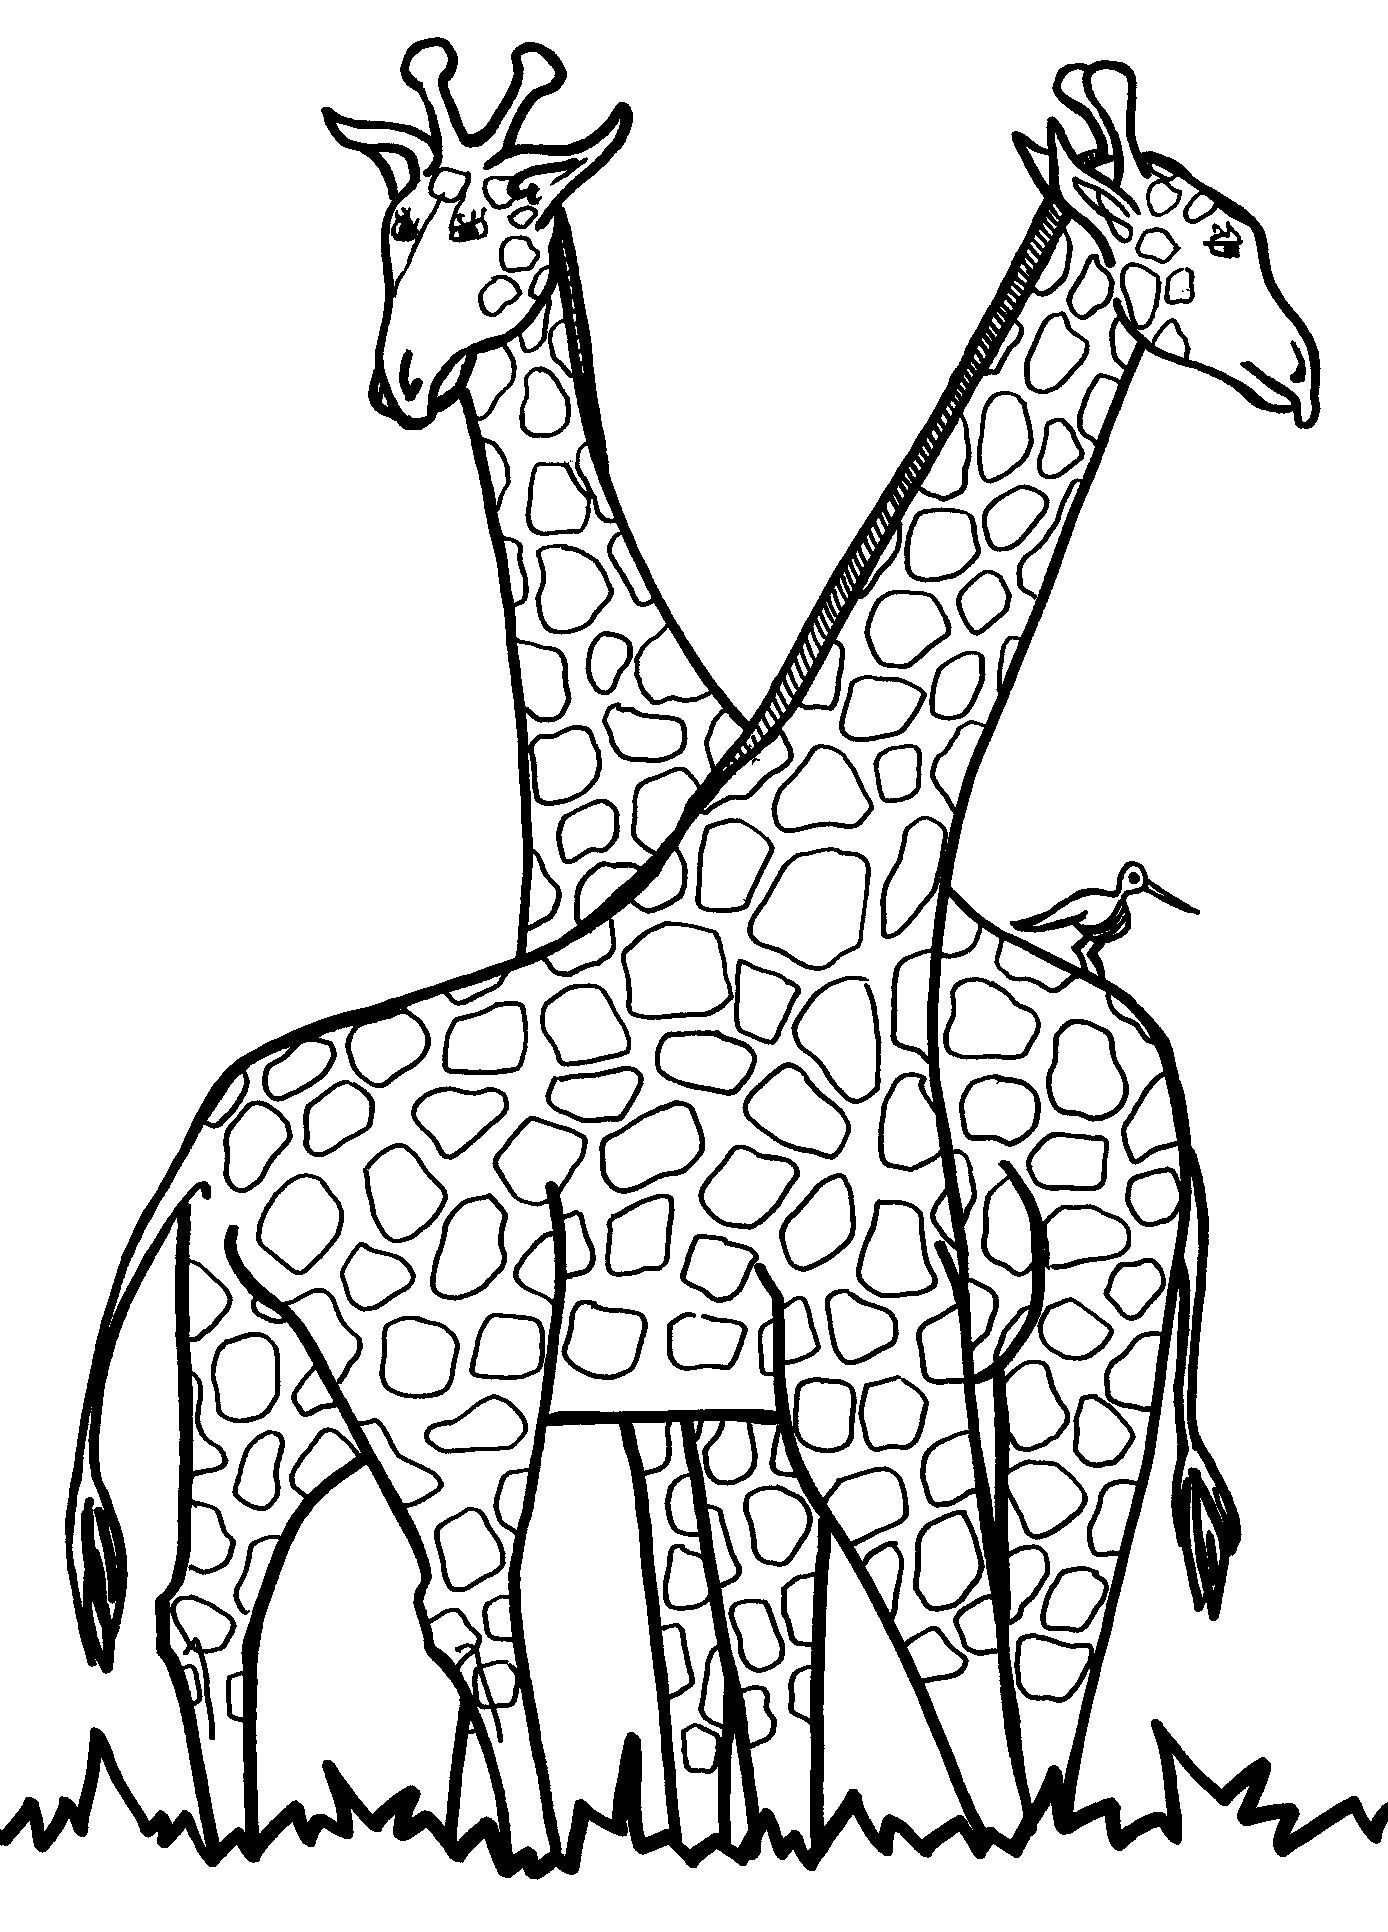 Giraffe Black And Whiote Drawing For Children Printable.